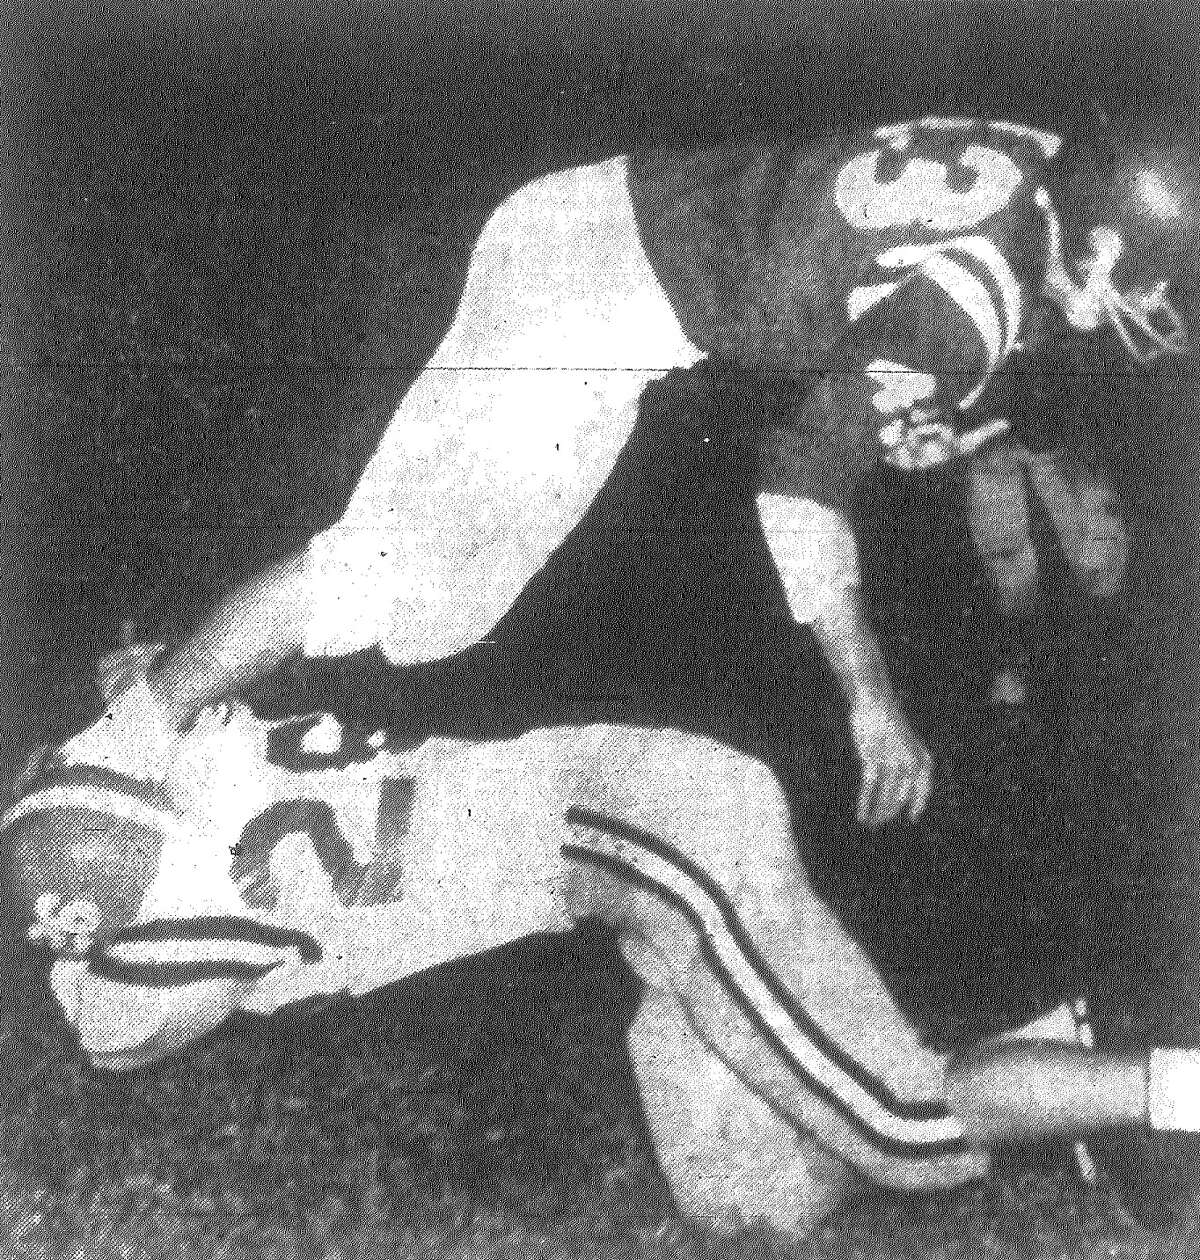 MacArthur's Mike Wilgren didn't grab much when he went for Jefferson's Bob Mouton, but when you can click a fellow's heels together he comes down anyway. Mouton had taken a pass from Patrick Shannon for 13 yards on this play in the second period as the Mustangs went for touchdown No. 2 during a 20-14 victory over MacArthur at Alamo Stadium. Published in the San Antonio Express Nov. 2, 1962.